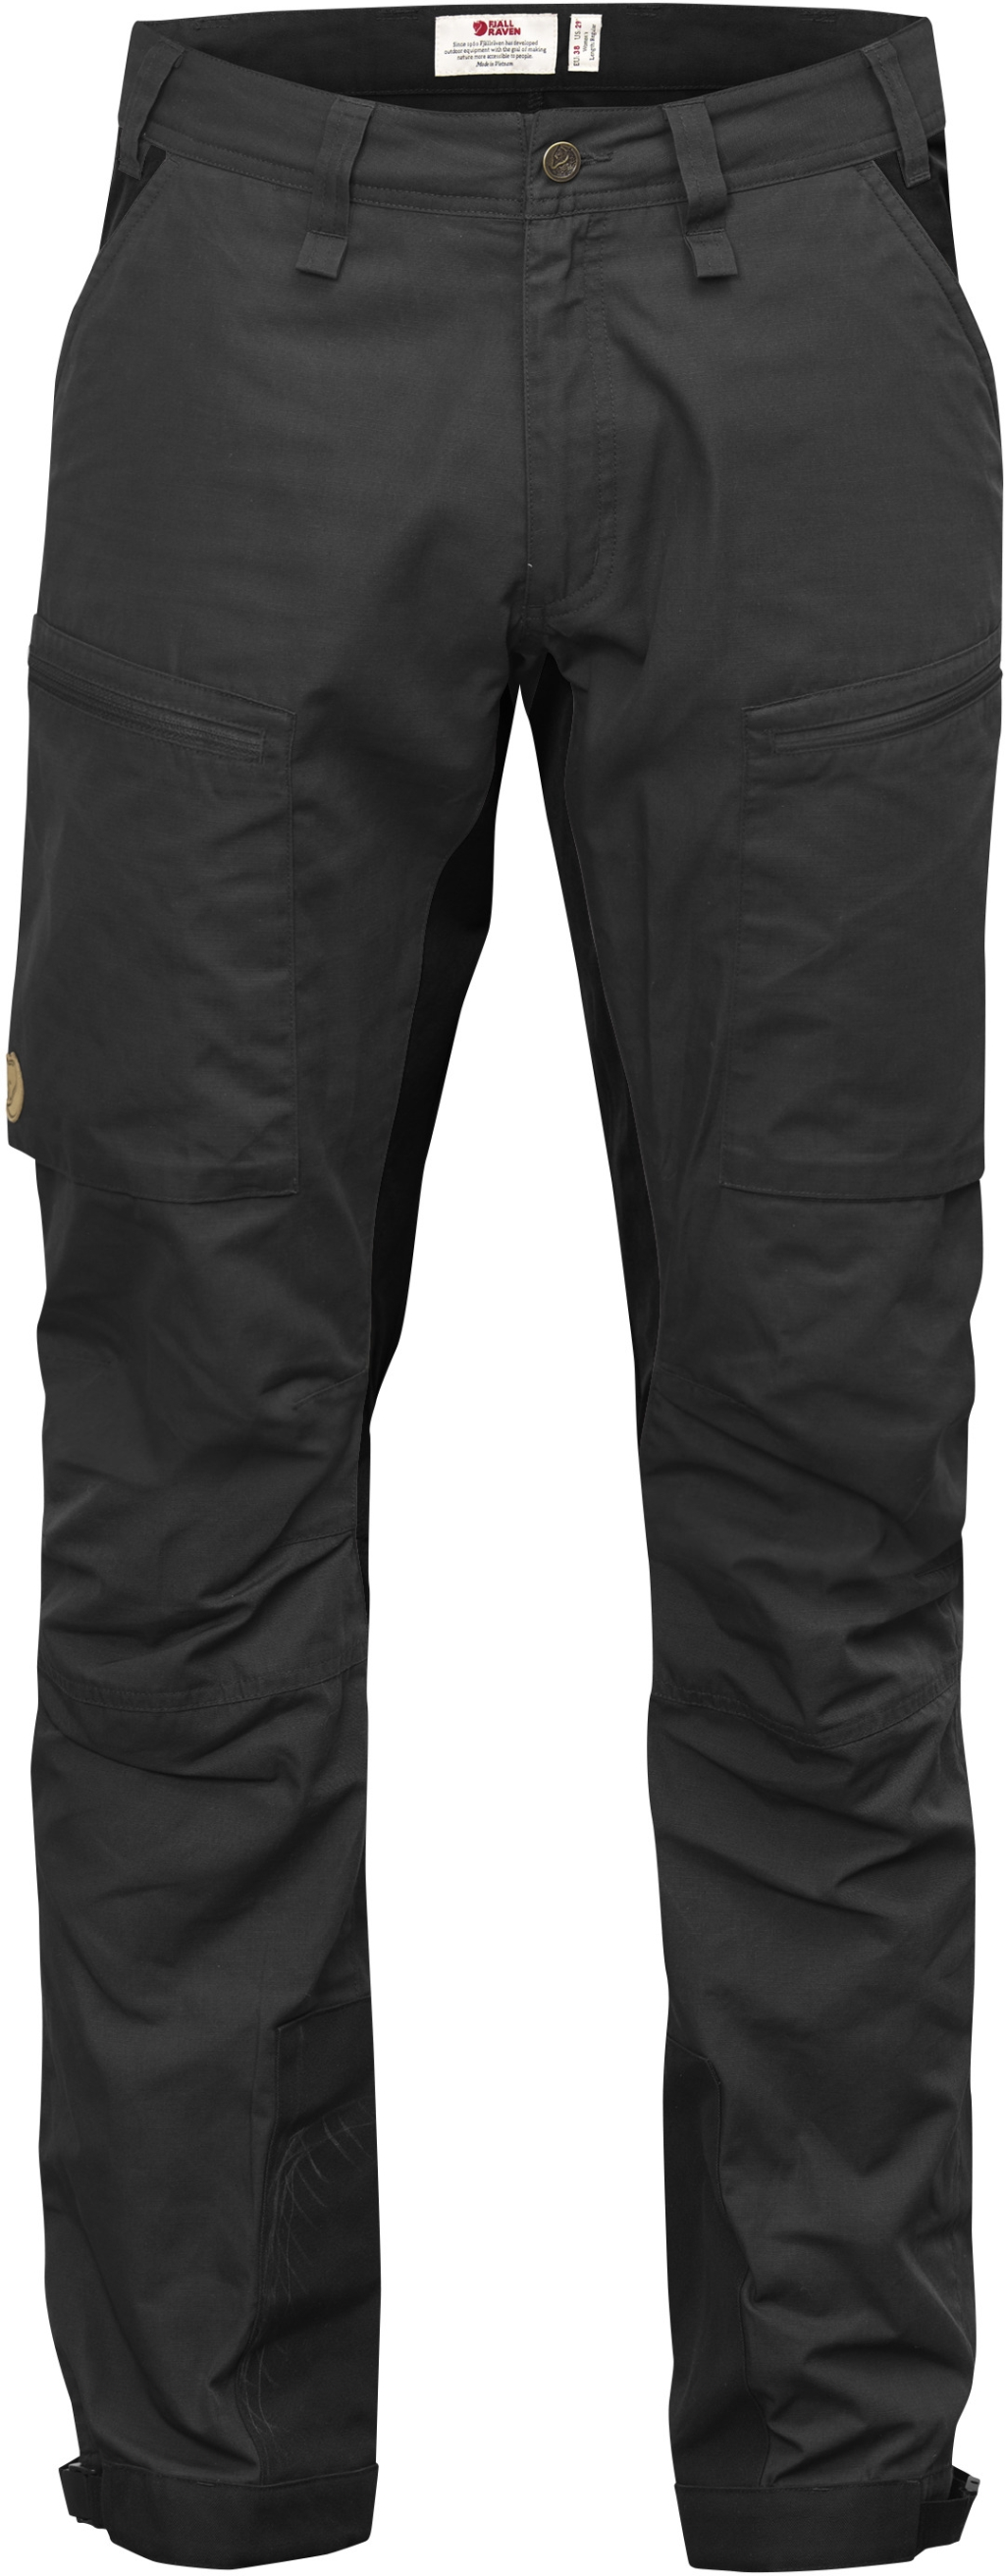 FjallRaven Abisko Lite Trekking Trousers Dark Grey-30